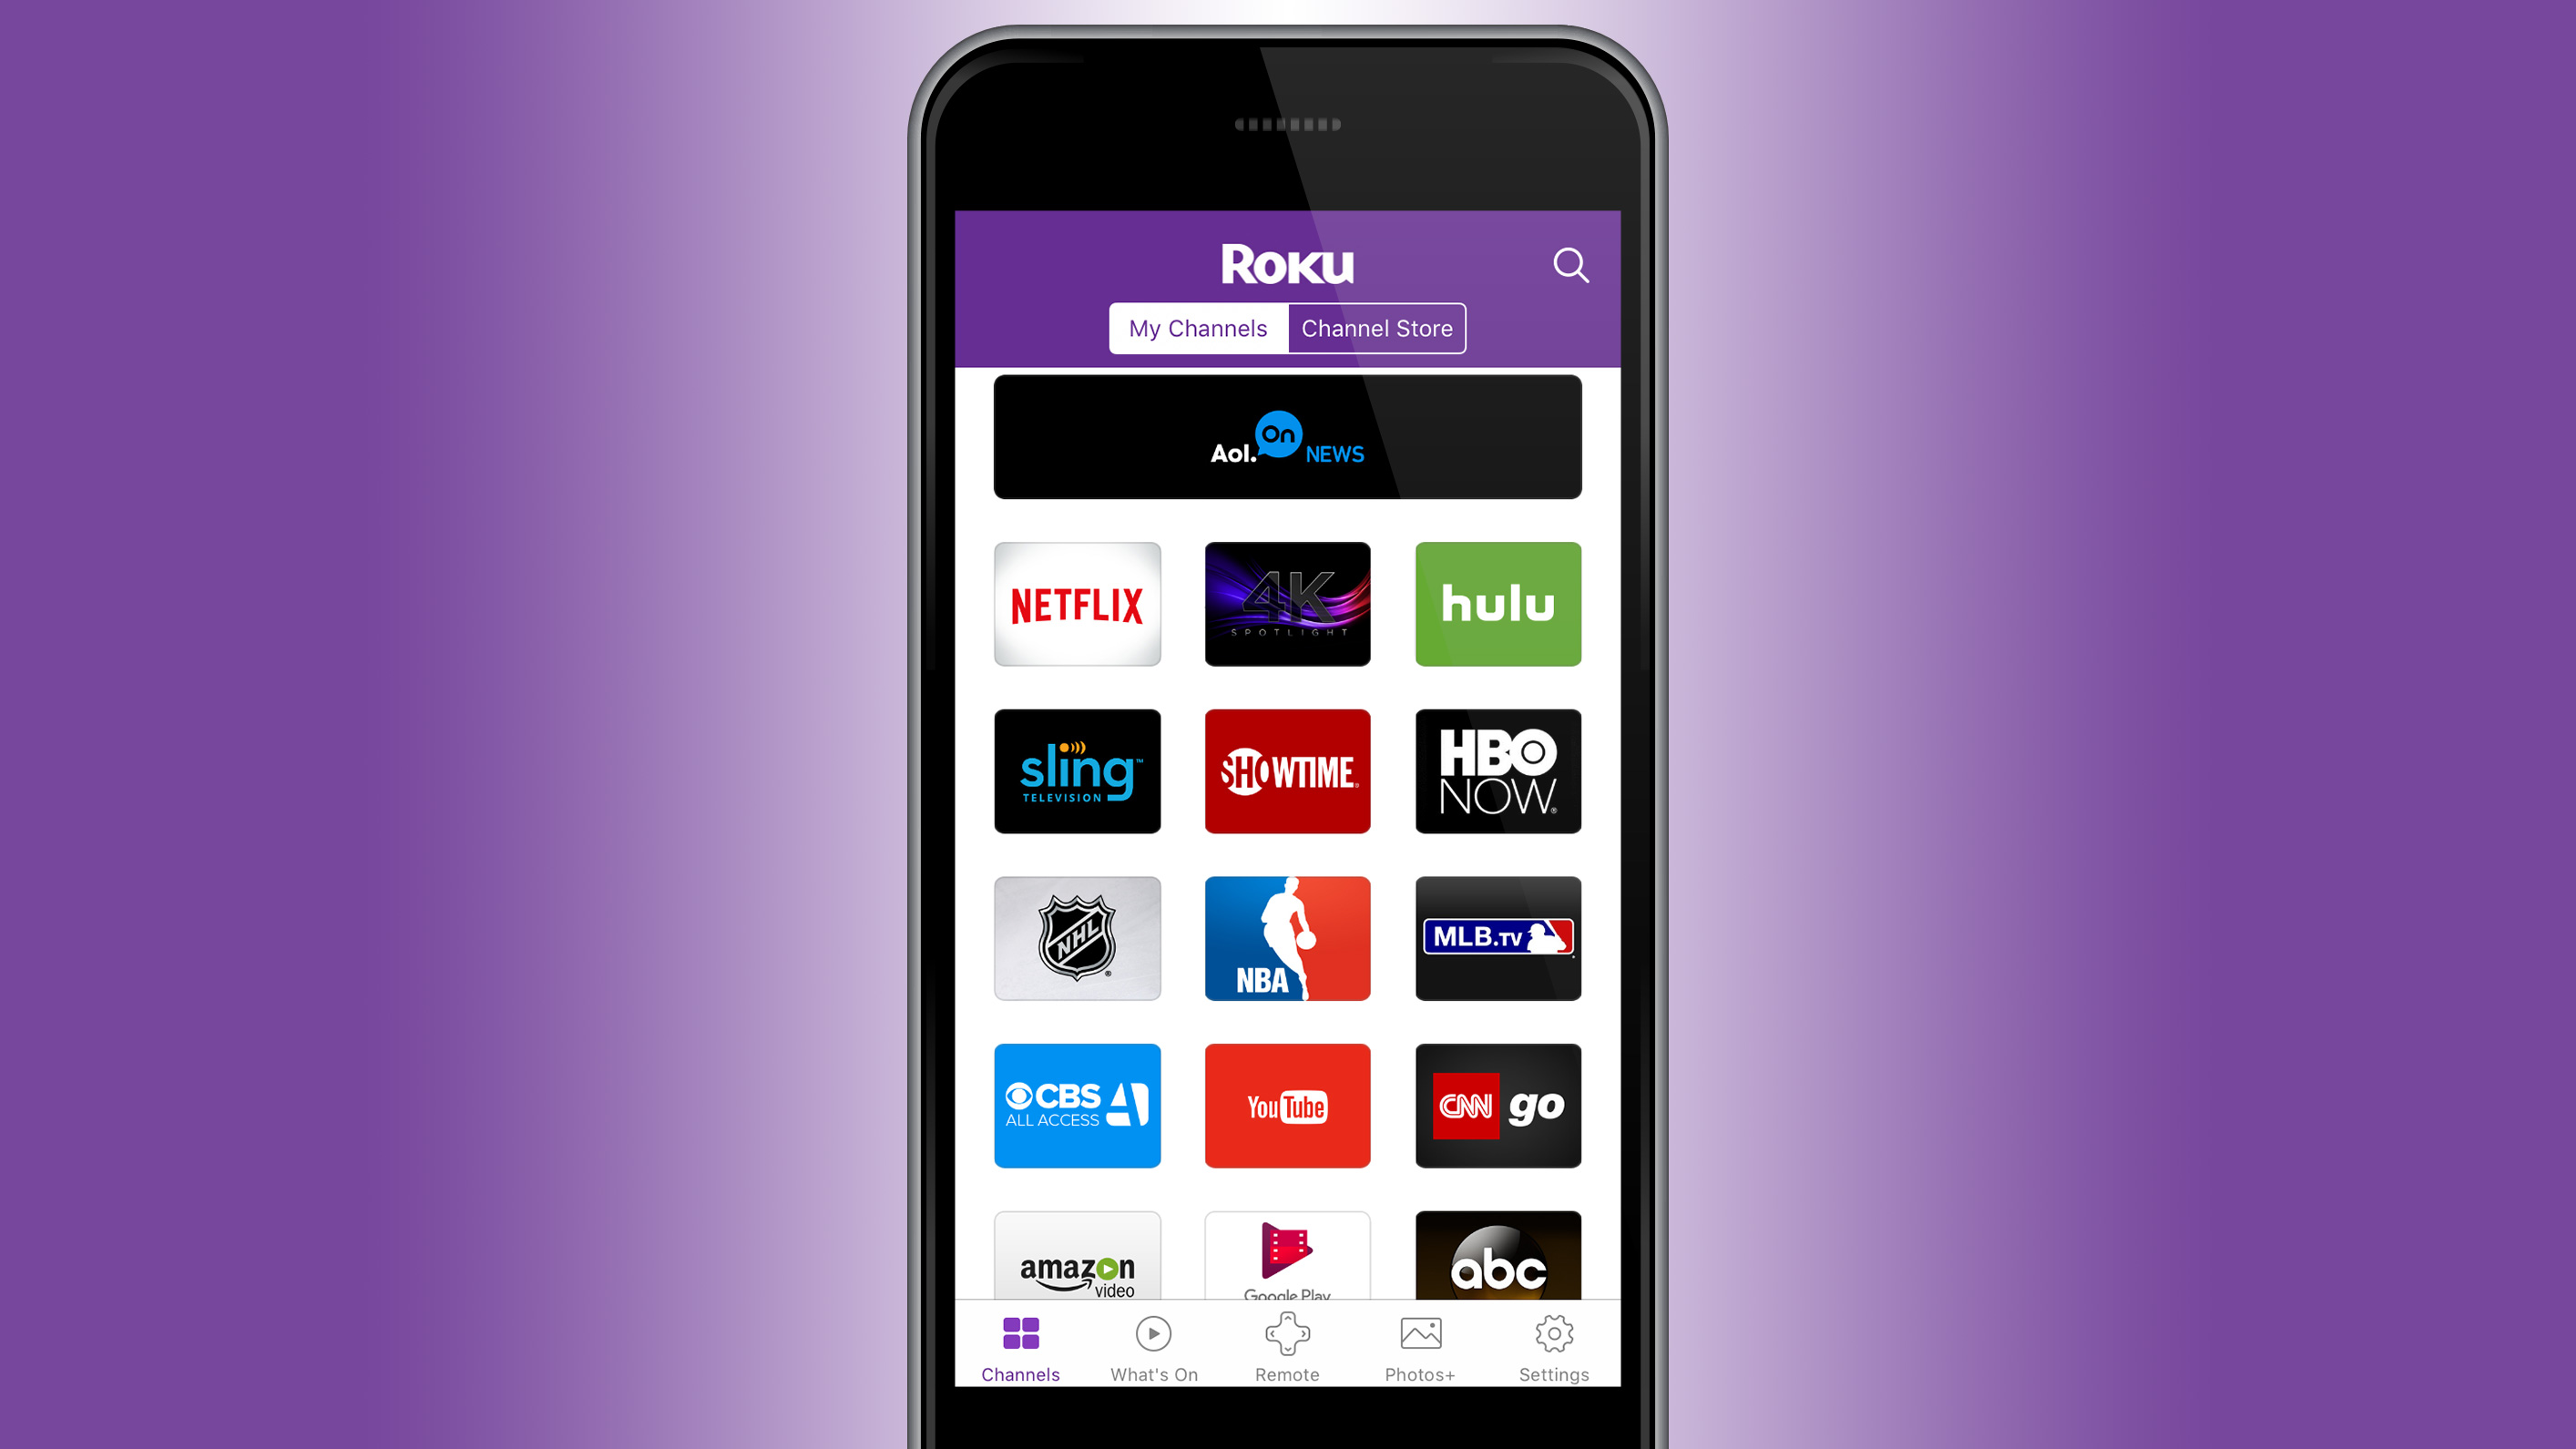 roku-mobile-app_my-channels-bg